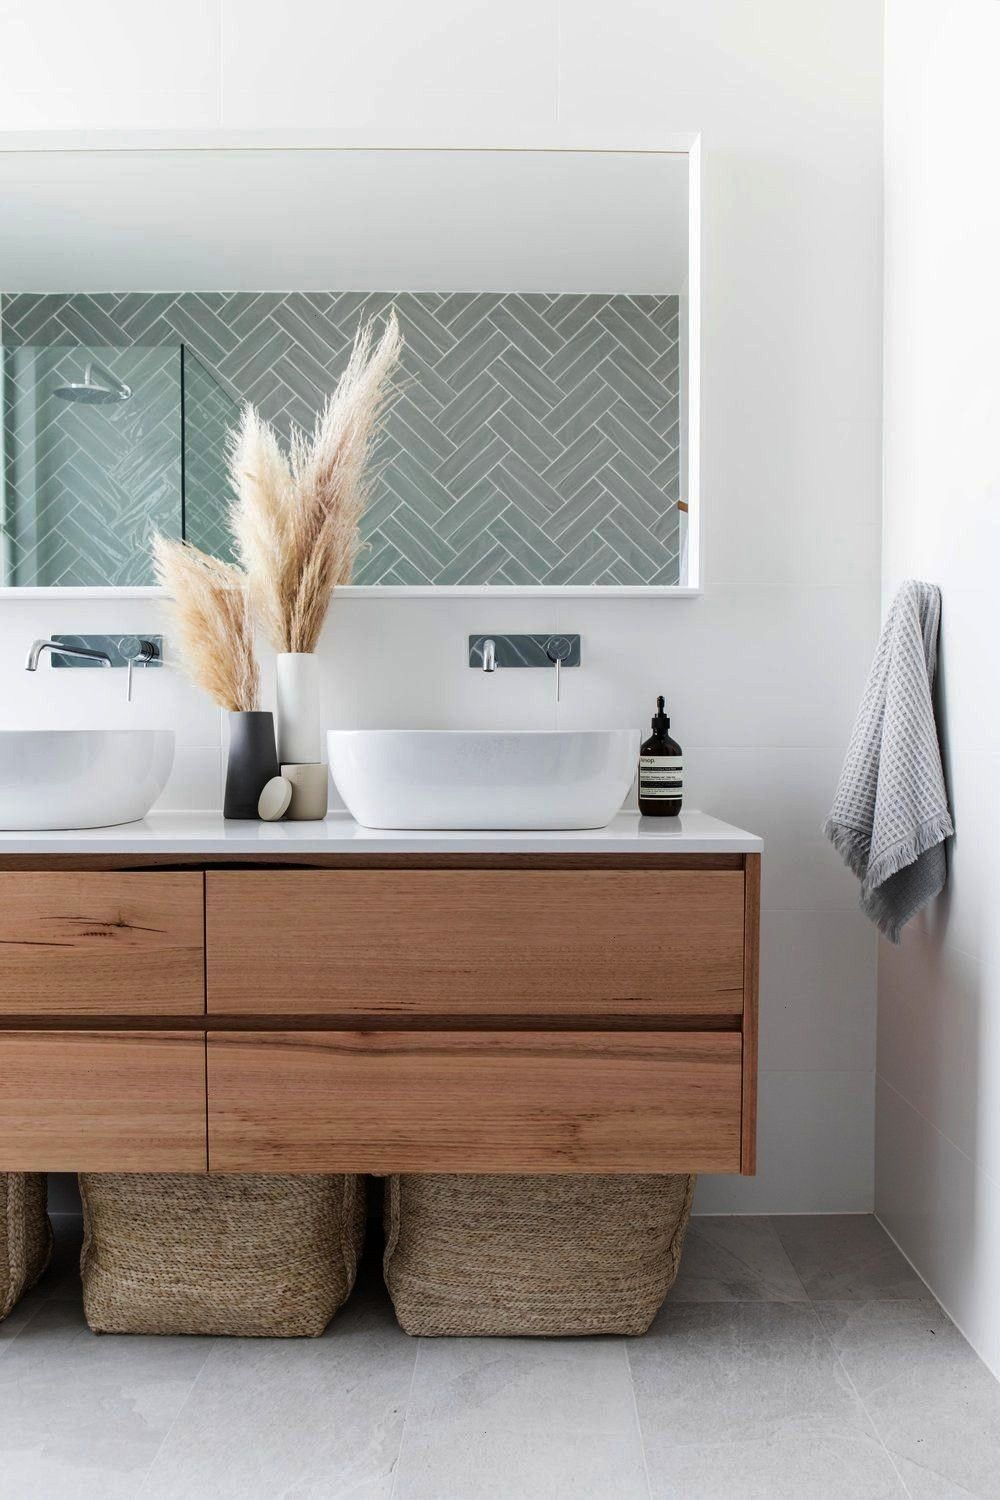 Twelve Investment Bathrooms  aubathrooms2 in Twelve Investment Bathrooms  aubathrooms Soho Mirror  The Art And Framing Company Herringbone shower tile is on trend See mor...